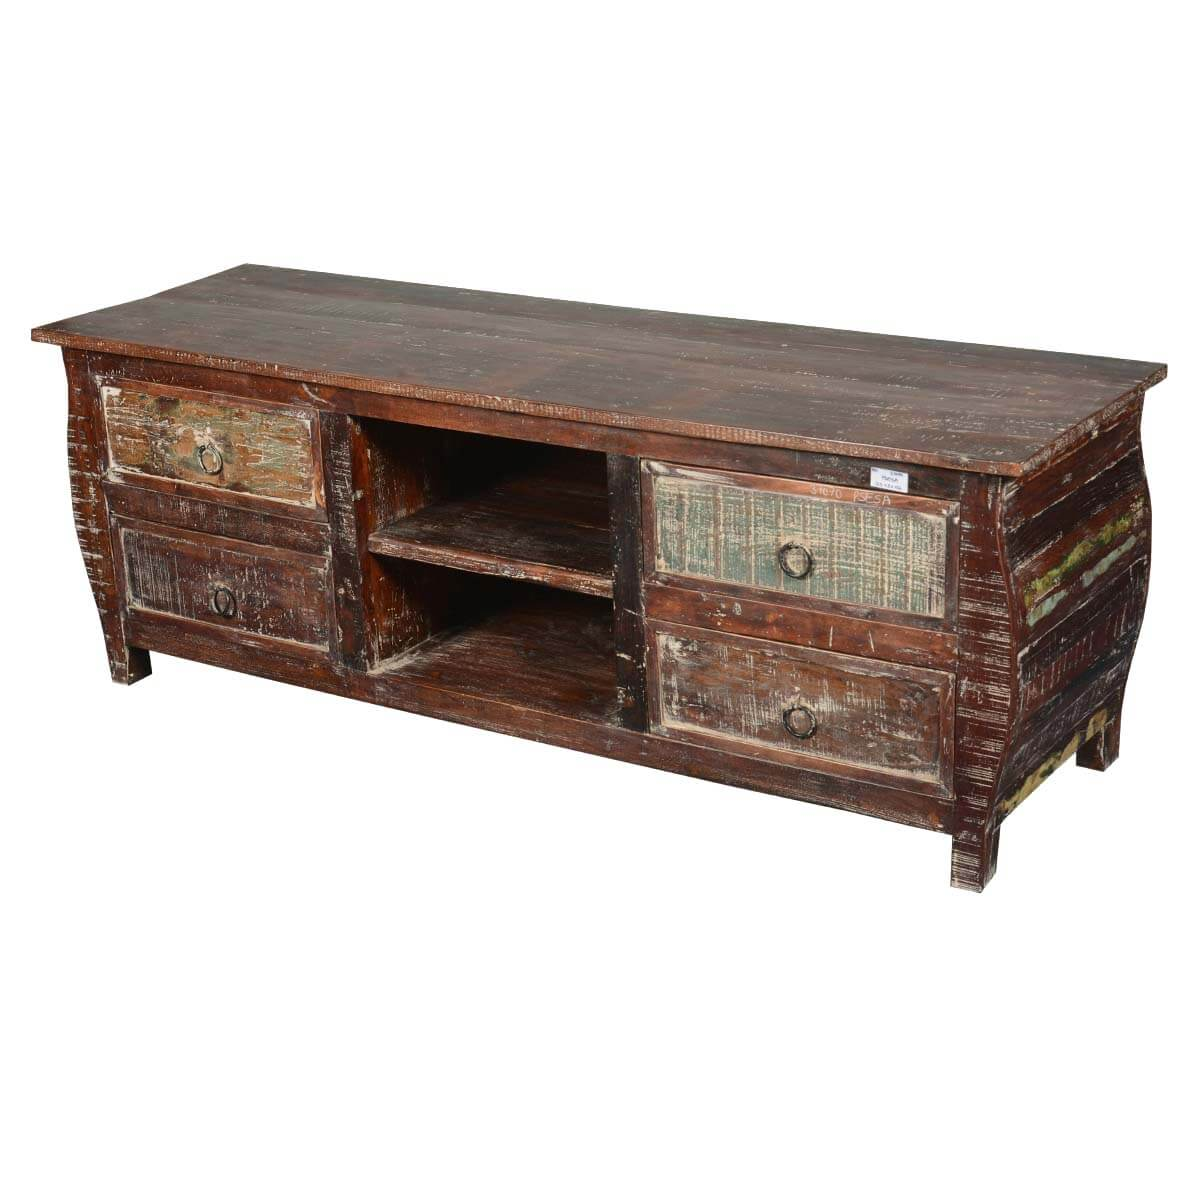 Rustic Cabin Reclaimed Wood Kettle Base Tv Cabinet Media. Powder Room Designs. Waterfall Desk. Petrified Wood Coffee Table. Convertible Sectional. Velvet Tufted Dining Chairs. Feng Shui Rules. Old World Decor. Gray Ceiling Fan